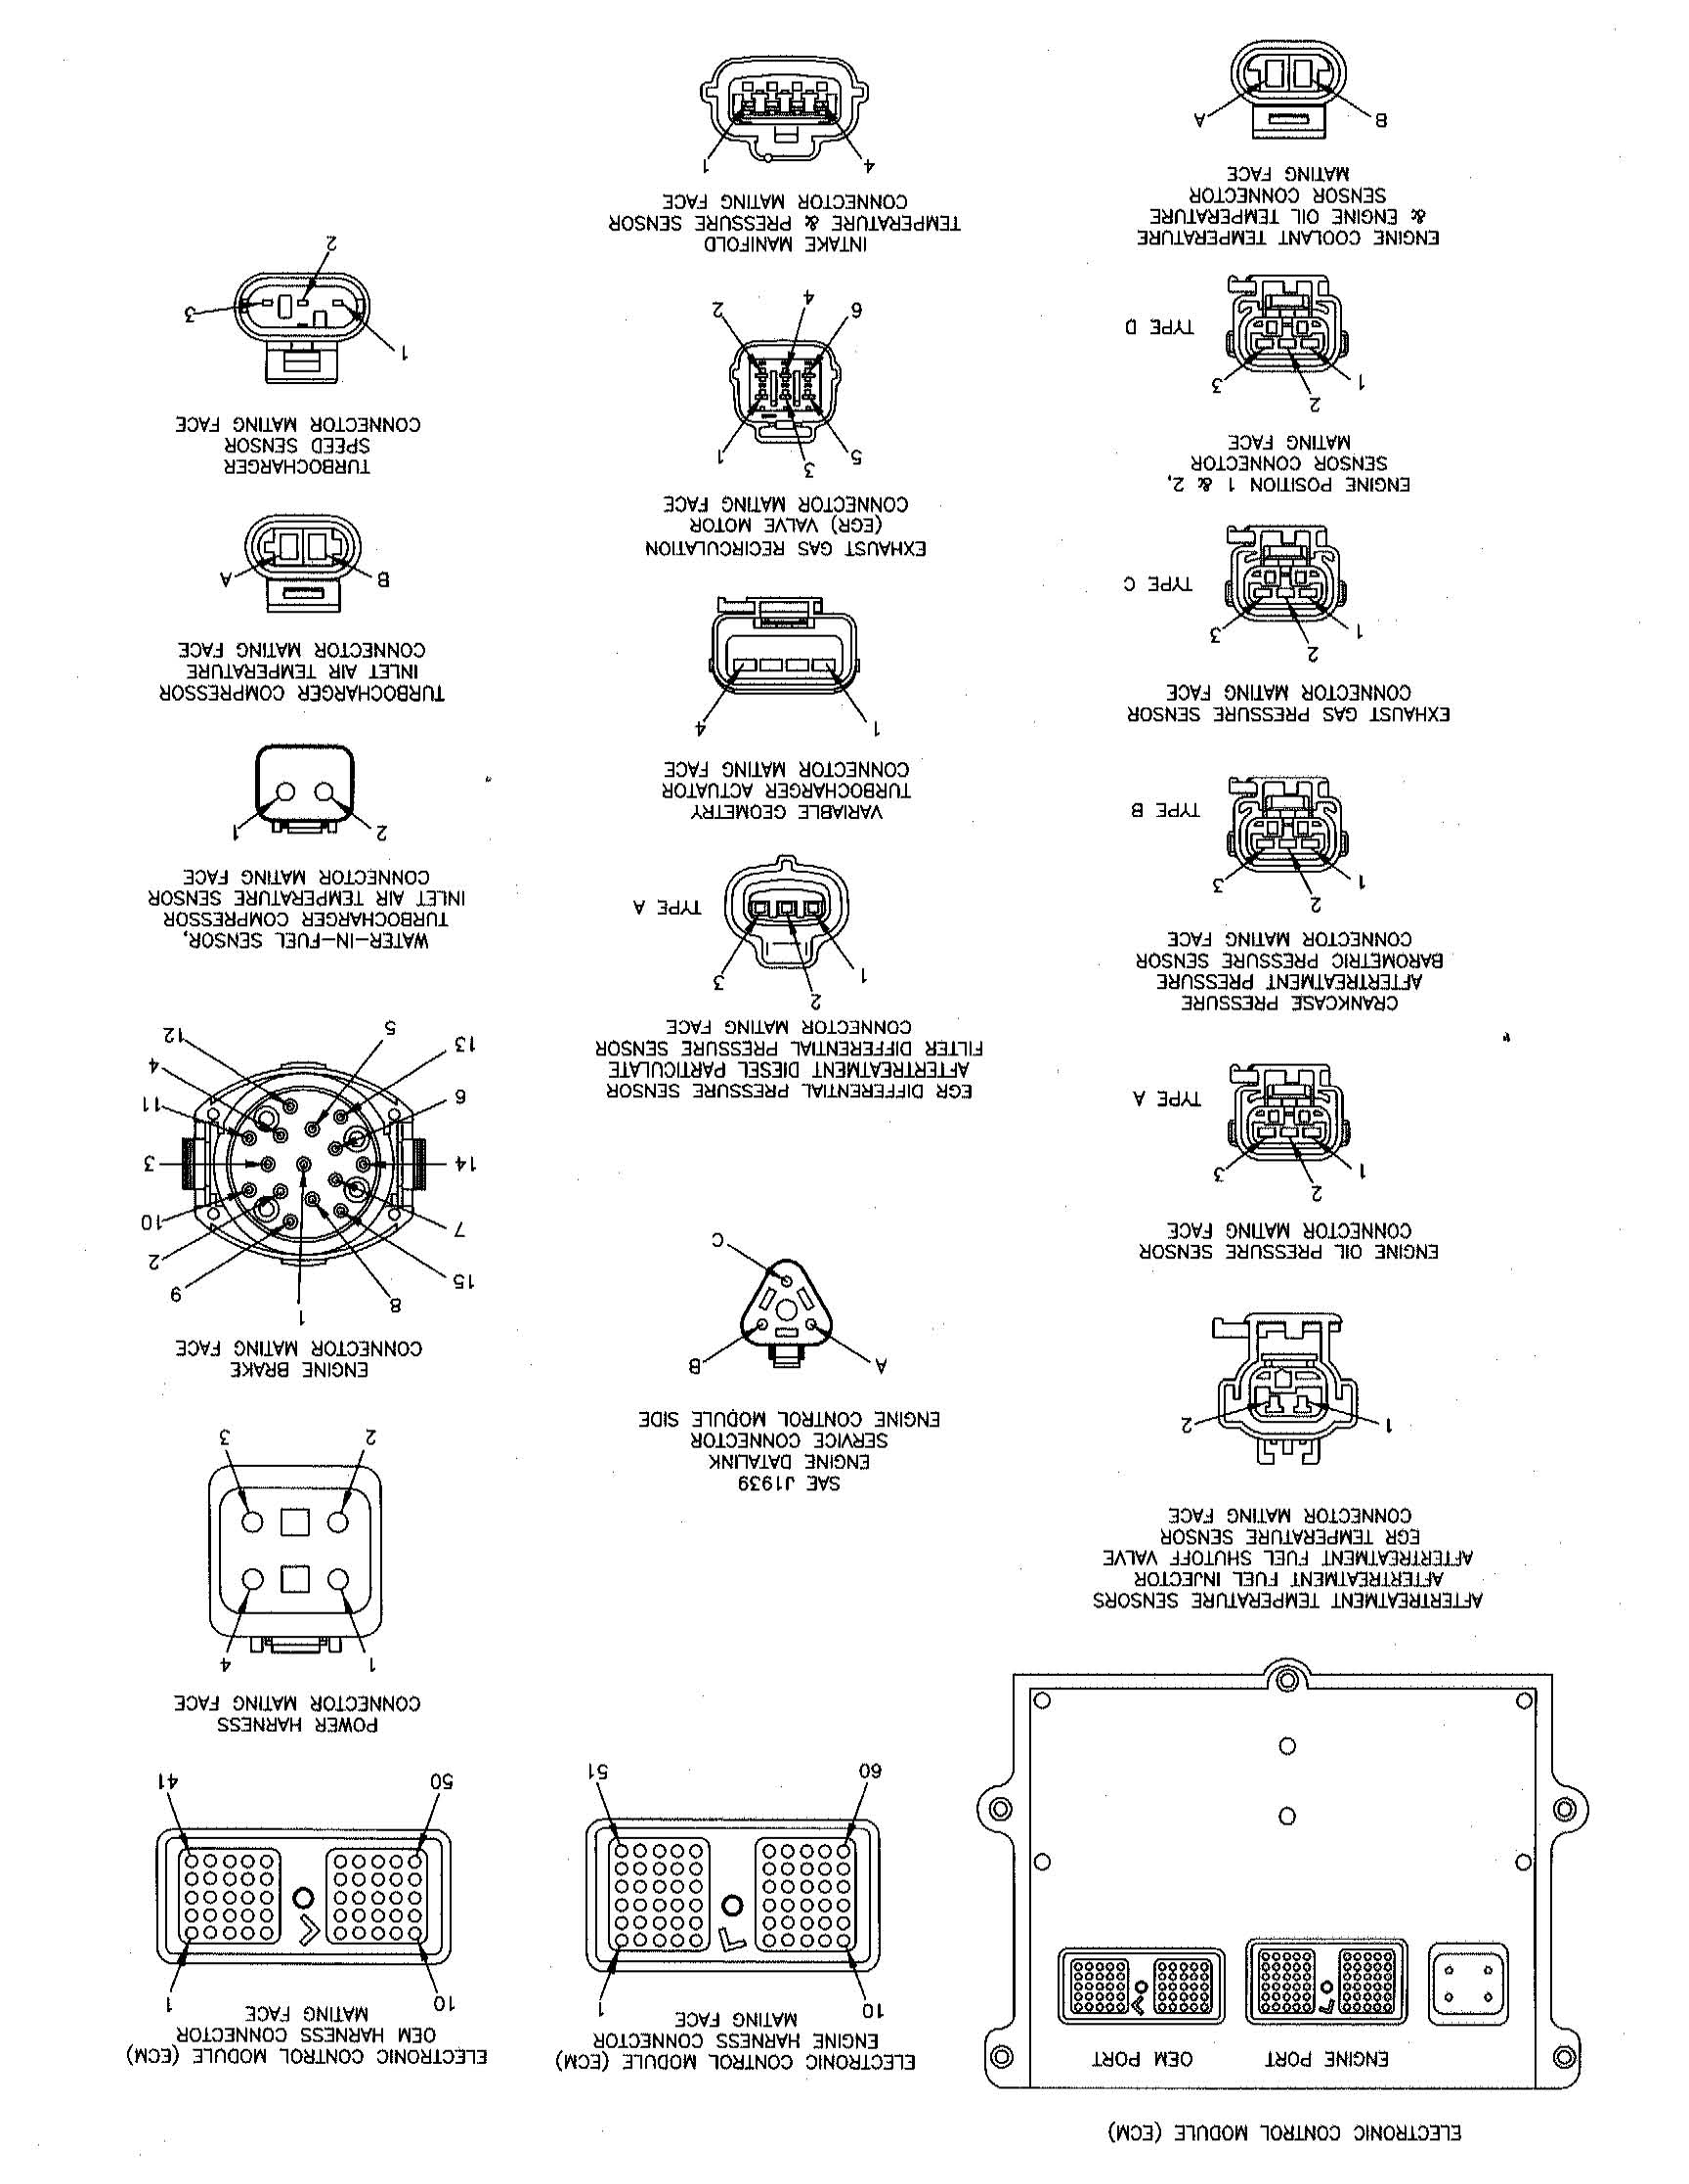 Wiring Diagrams For Kenworth T800 – Kenworth T800 Wiring Schematic Diagrams